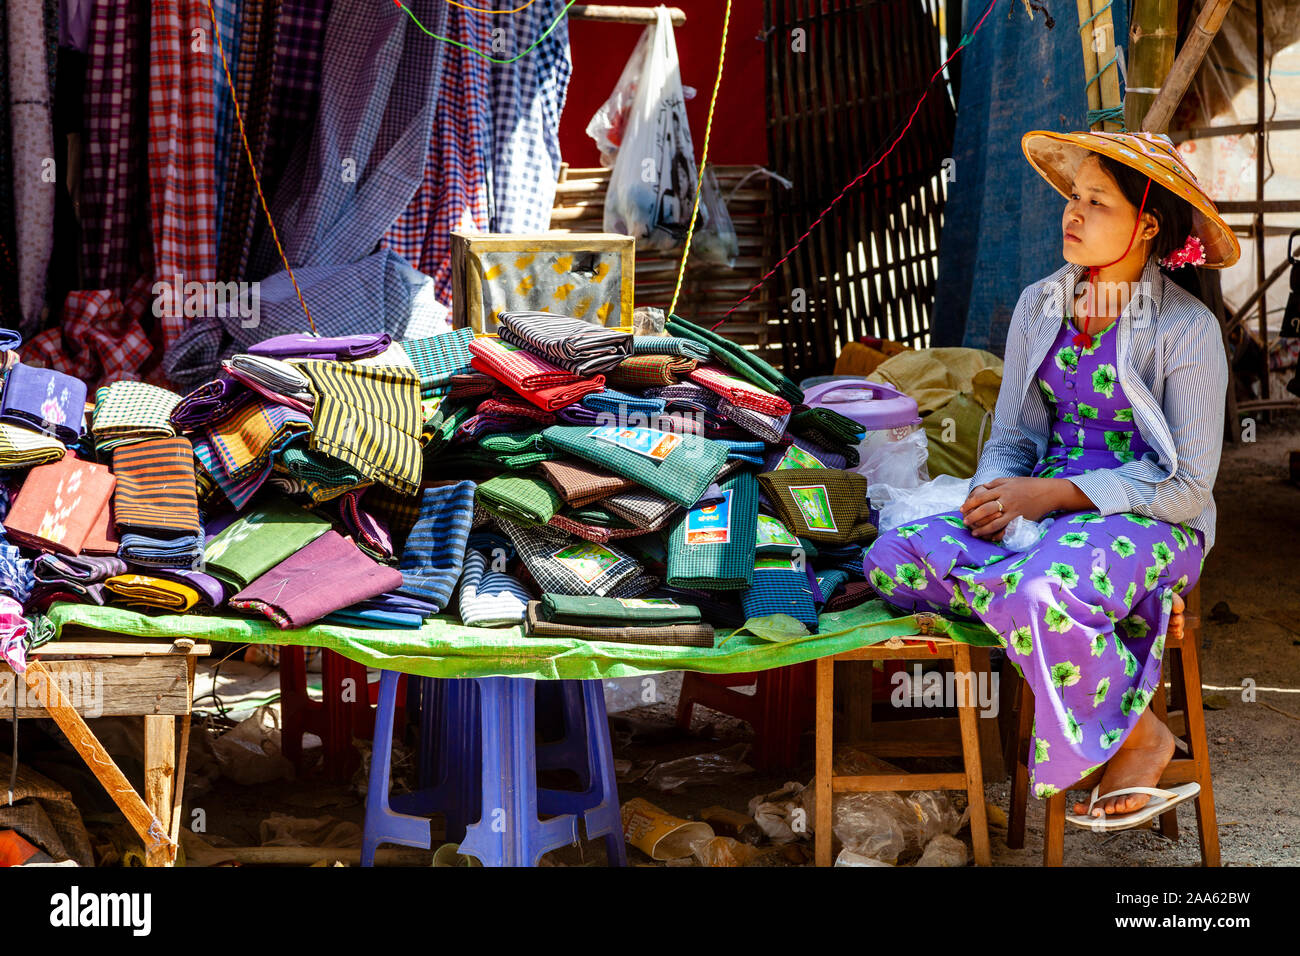 A Colourful Clothes Shop Pindaya Shan State Myanmar Stock Photo Alamy